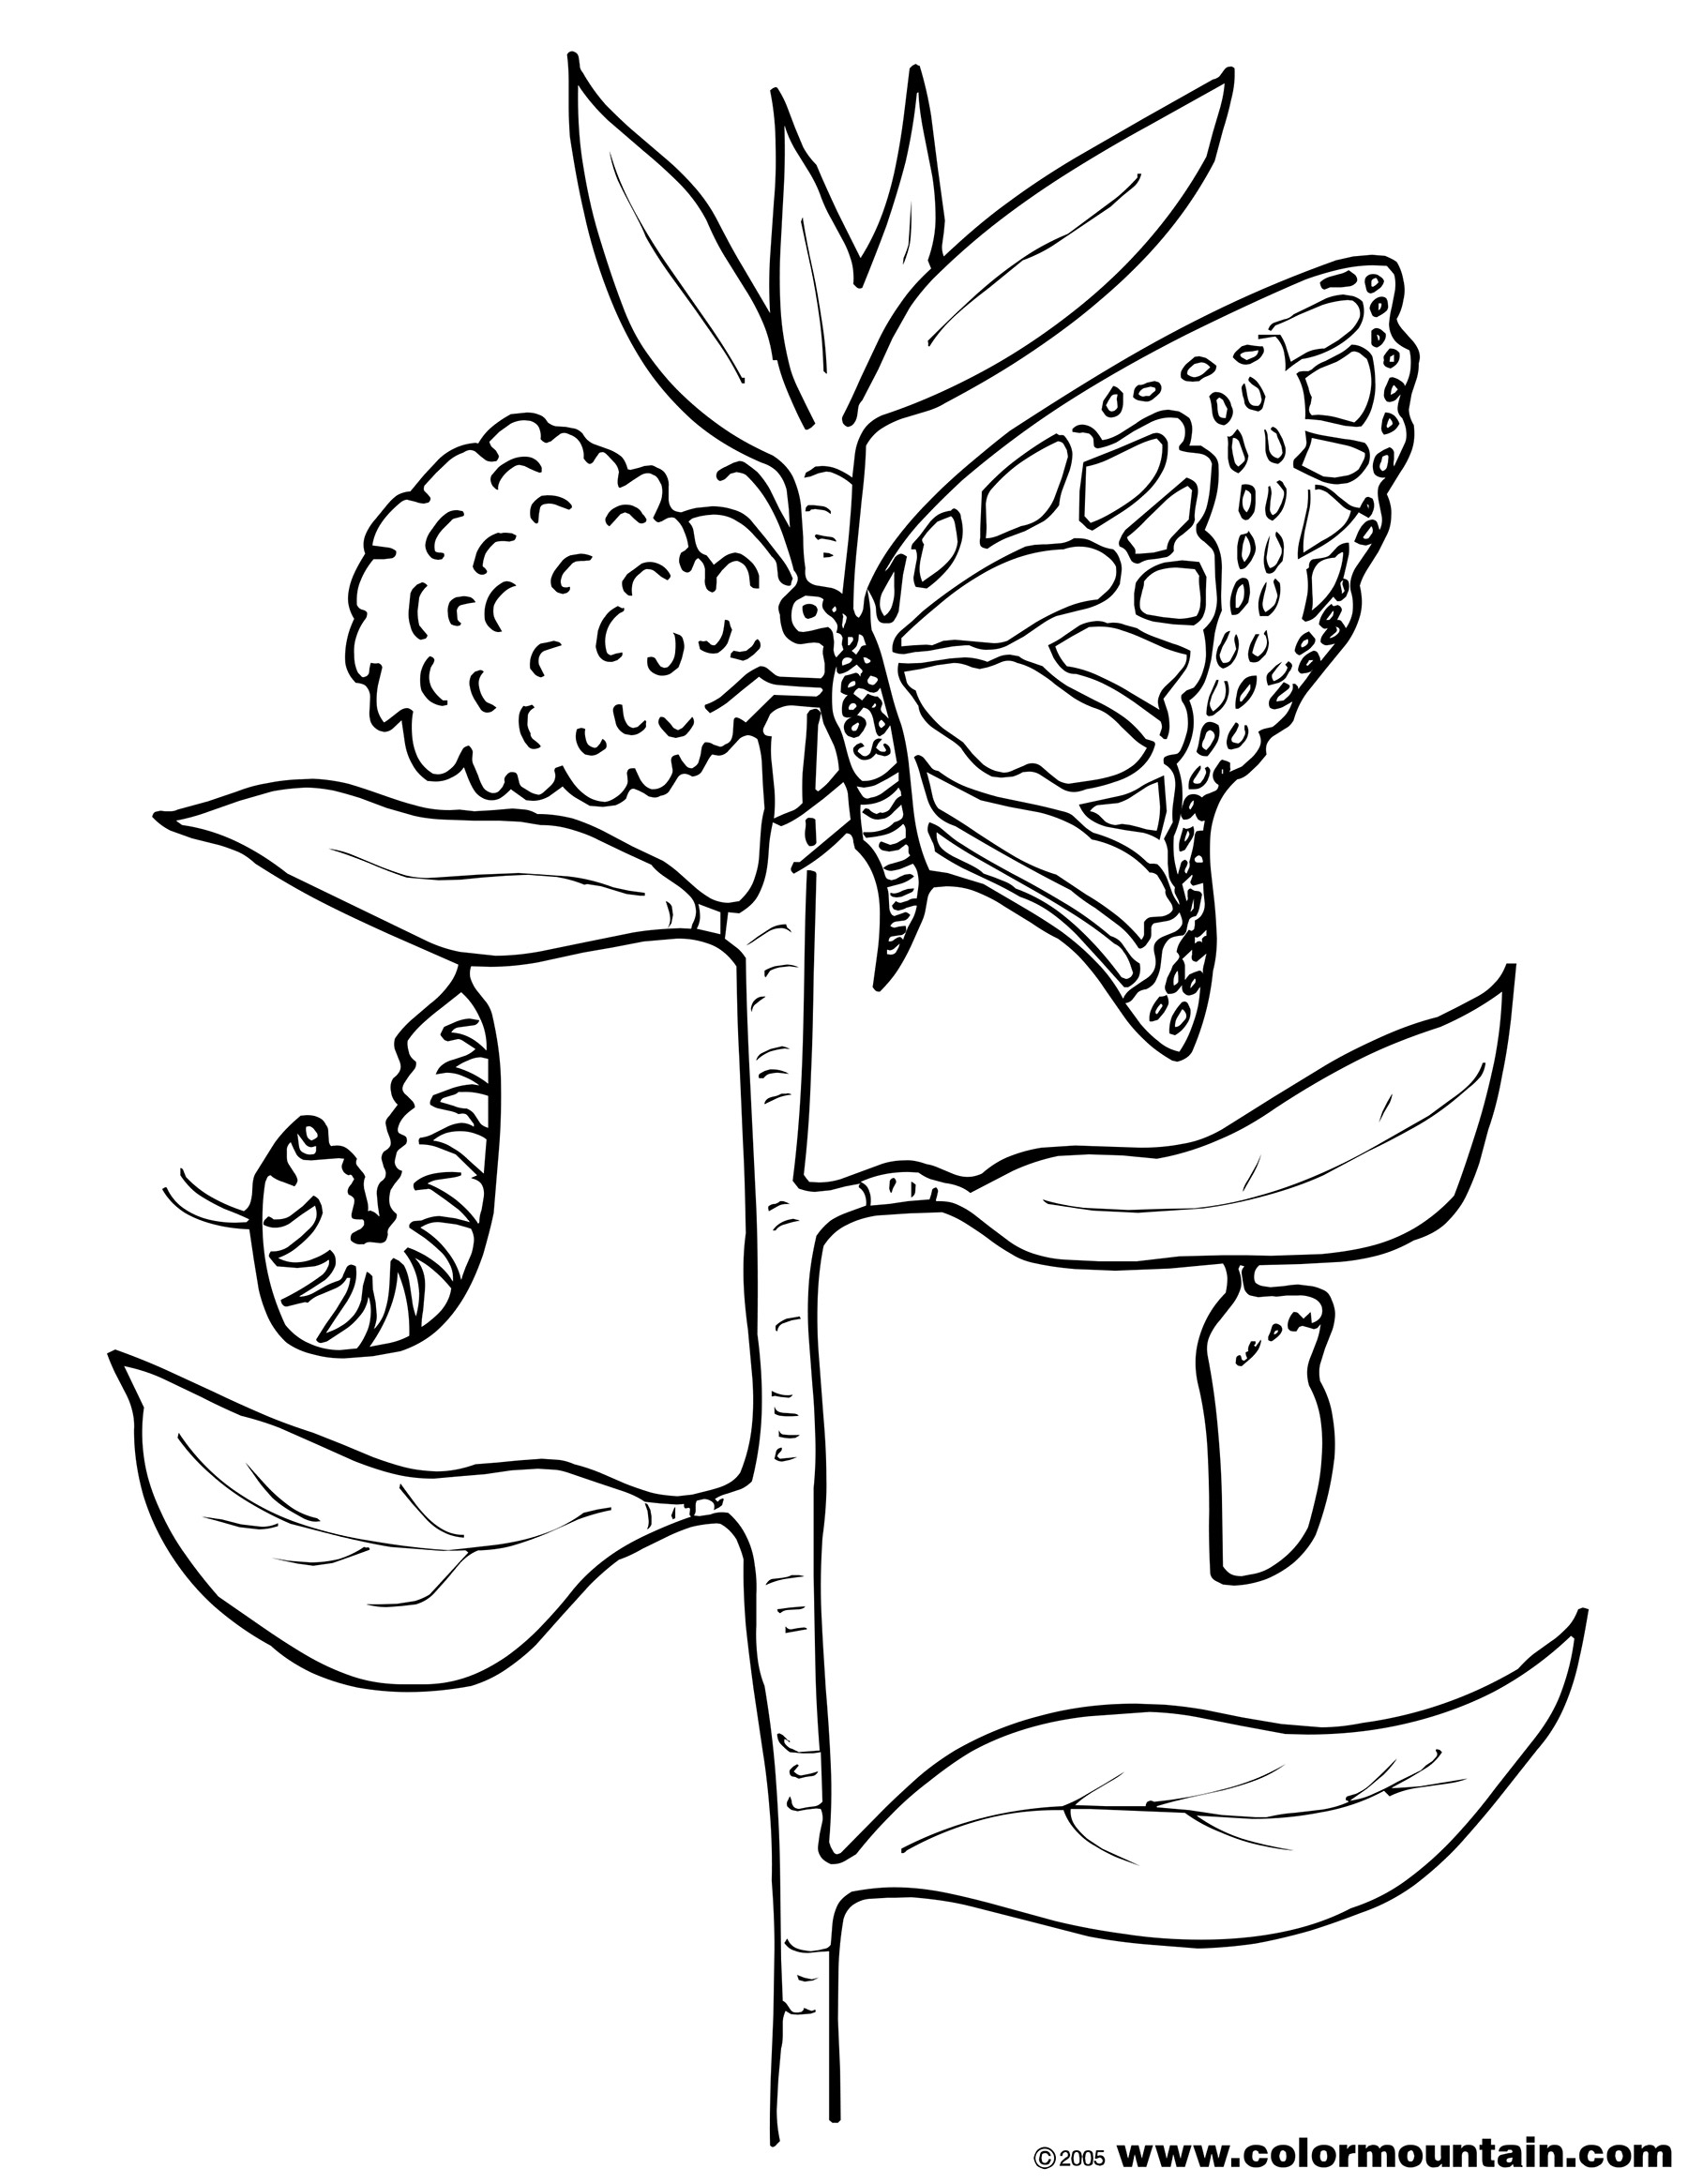 caterpillar to butterfly coloring page butterfly and caterpillar coloring page create a coloring butterfly to page caterpillar